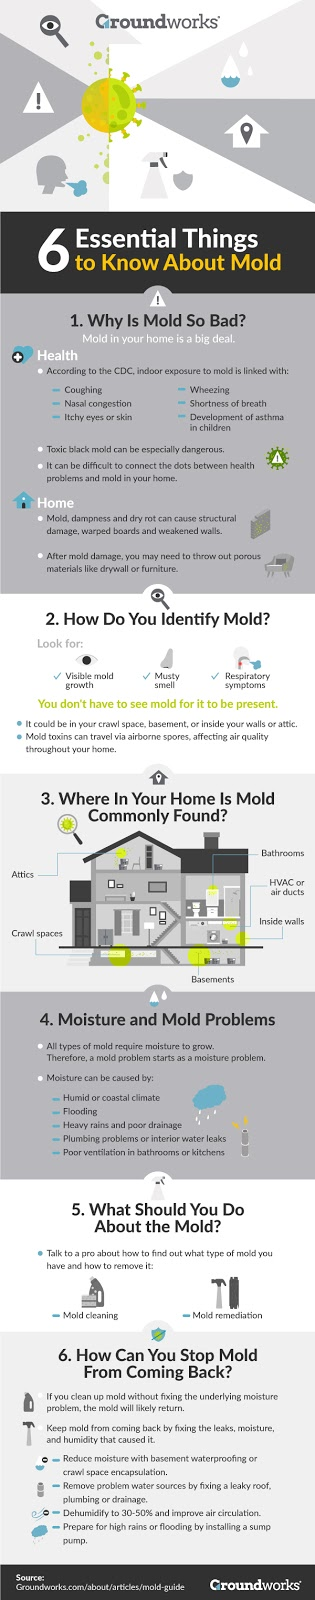 mold-guide-infographic-groundworks Why You Need to Prevent Mold at Your Home